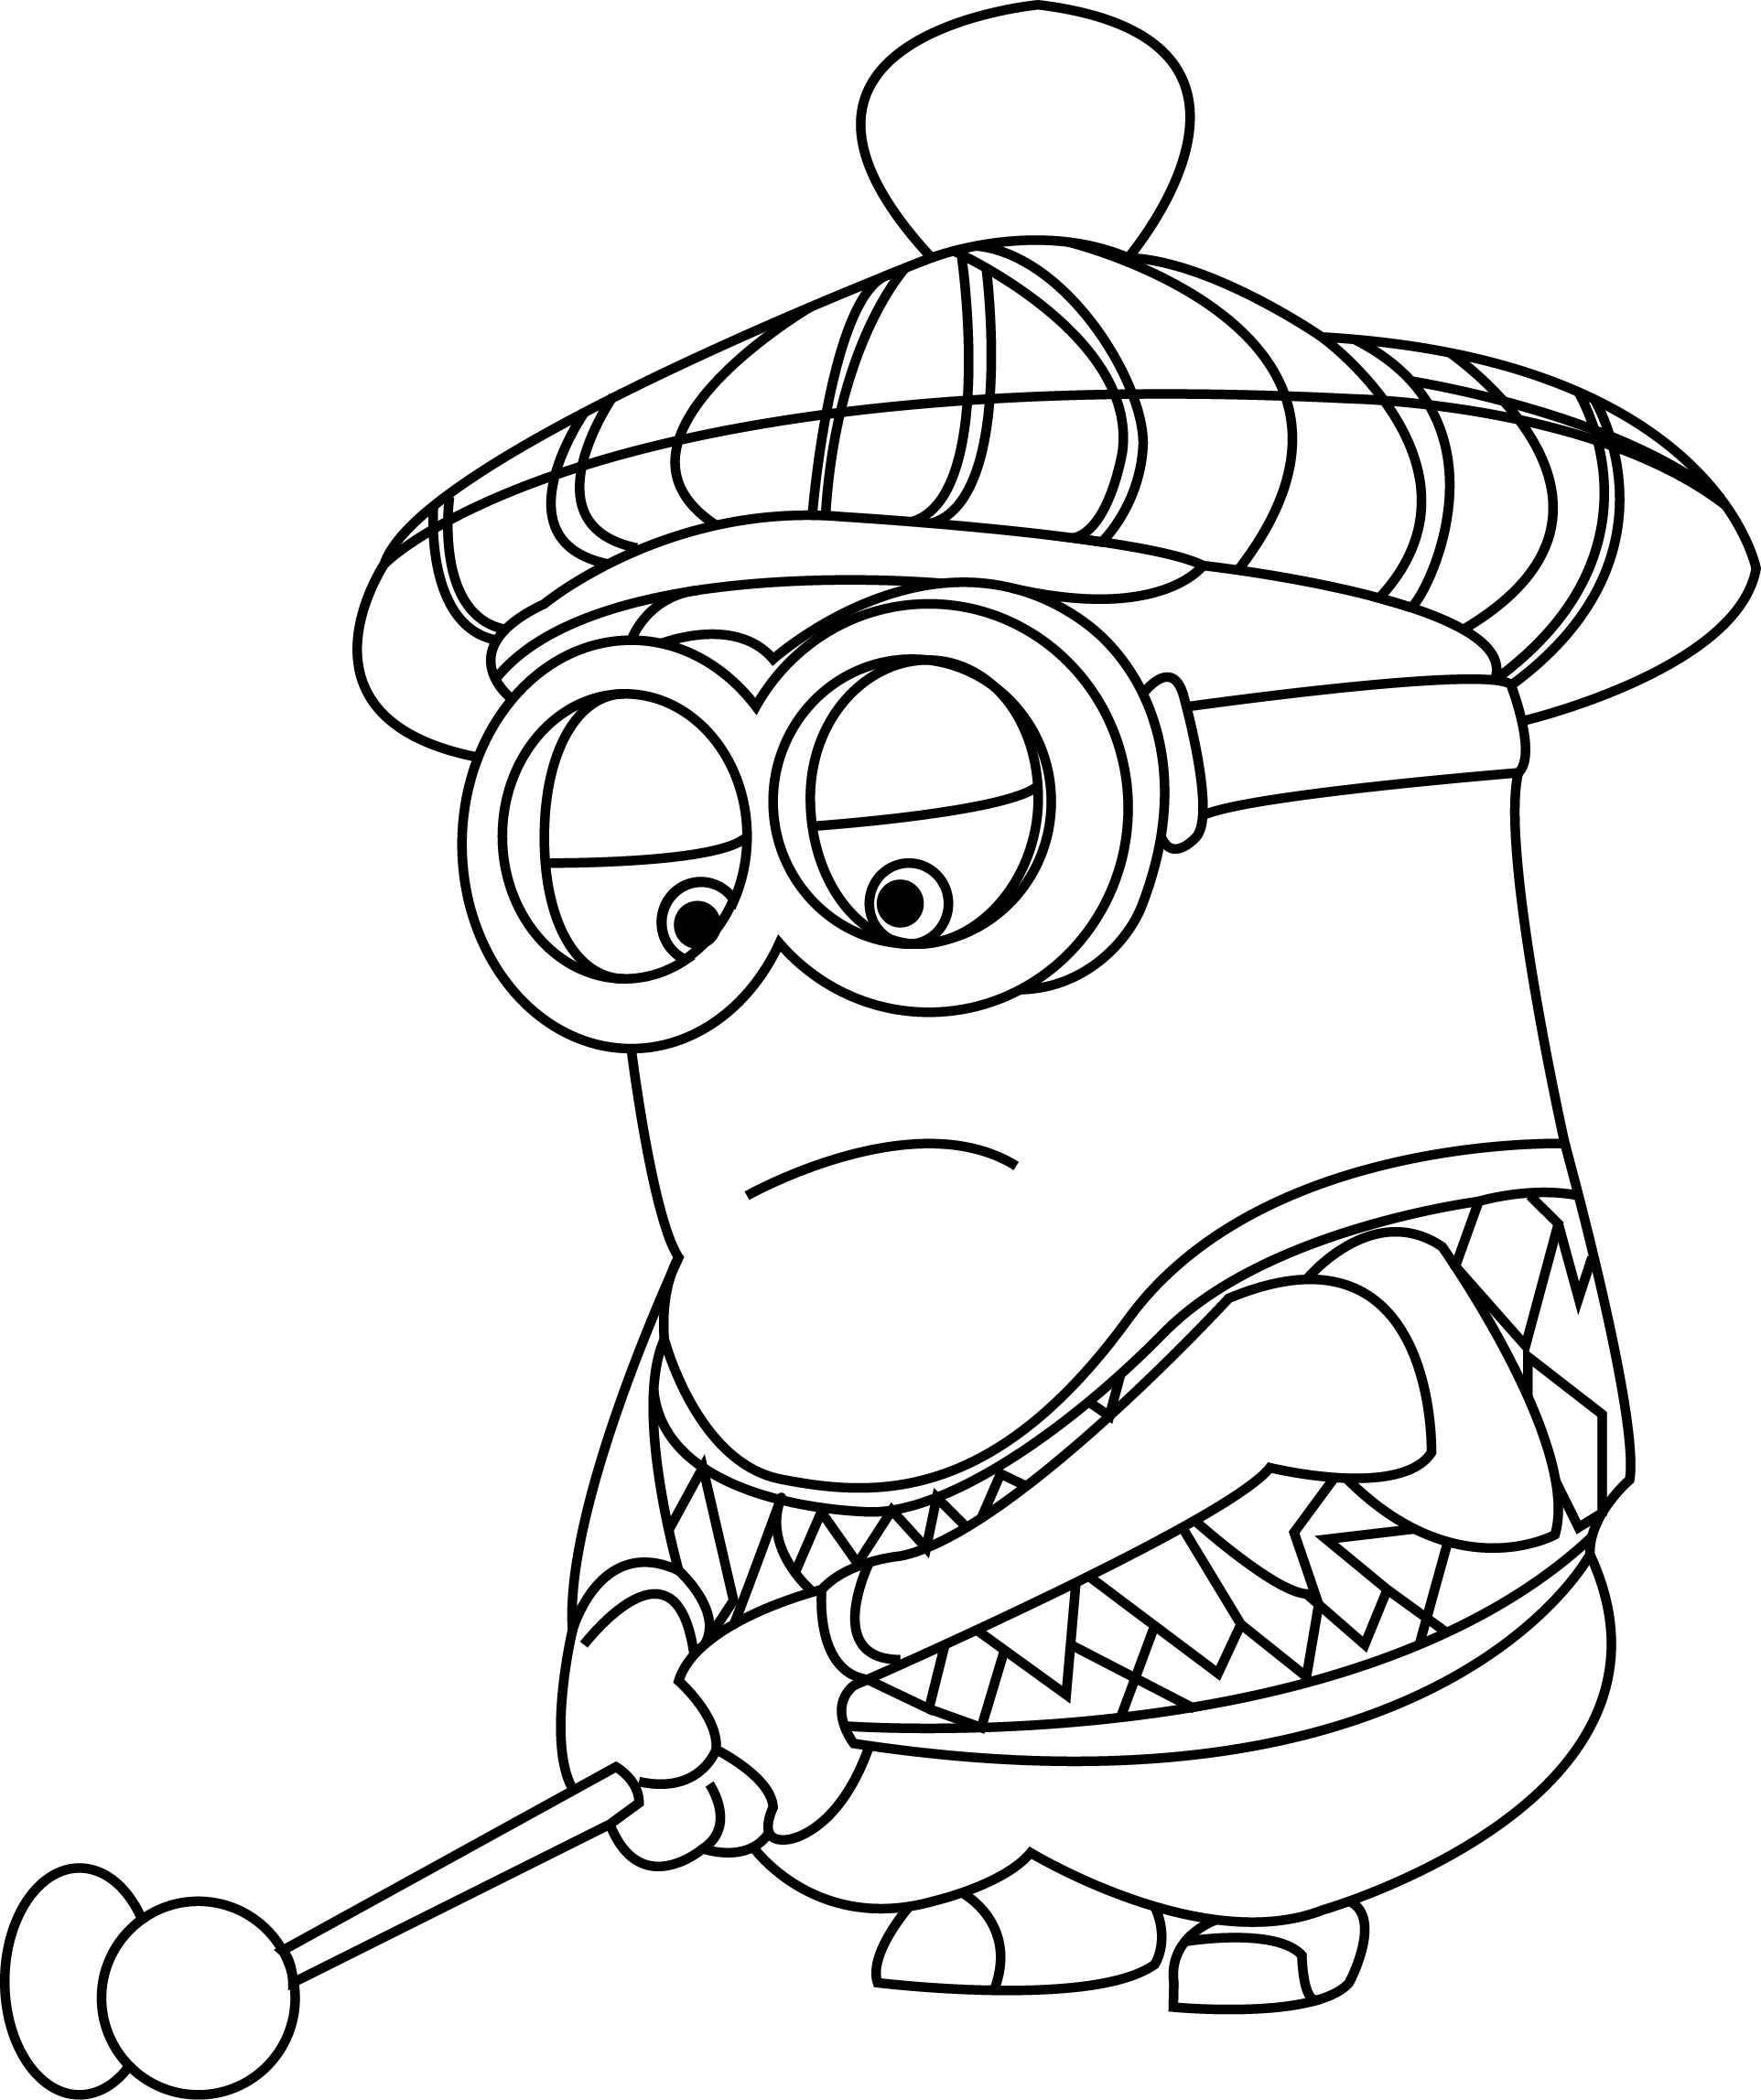 1924x2295 New Despicable Me Coloring Pages To Print Minions Kevin Kids